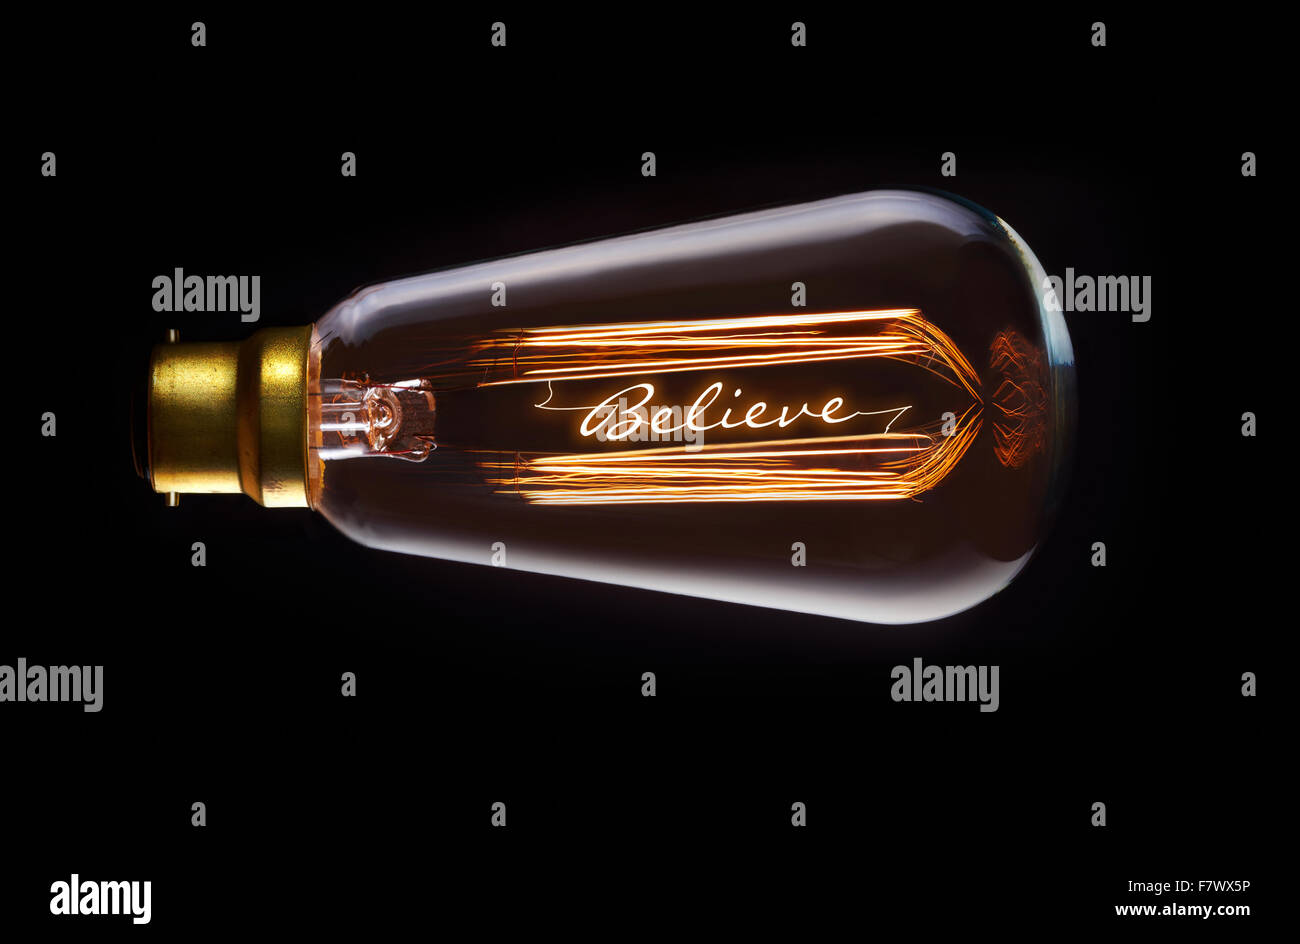 Religion, believe concept in a filament lightbulb. - Stock Image